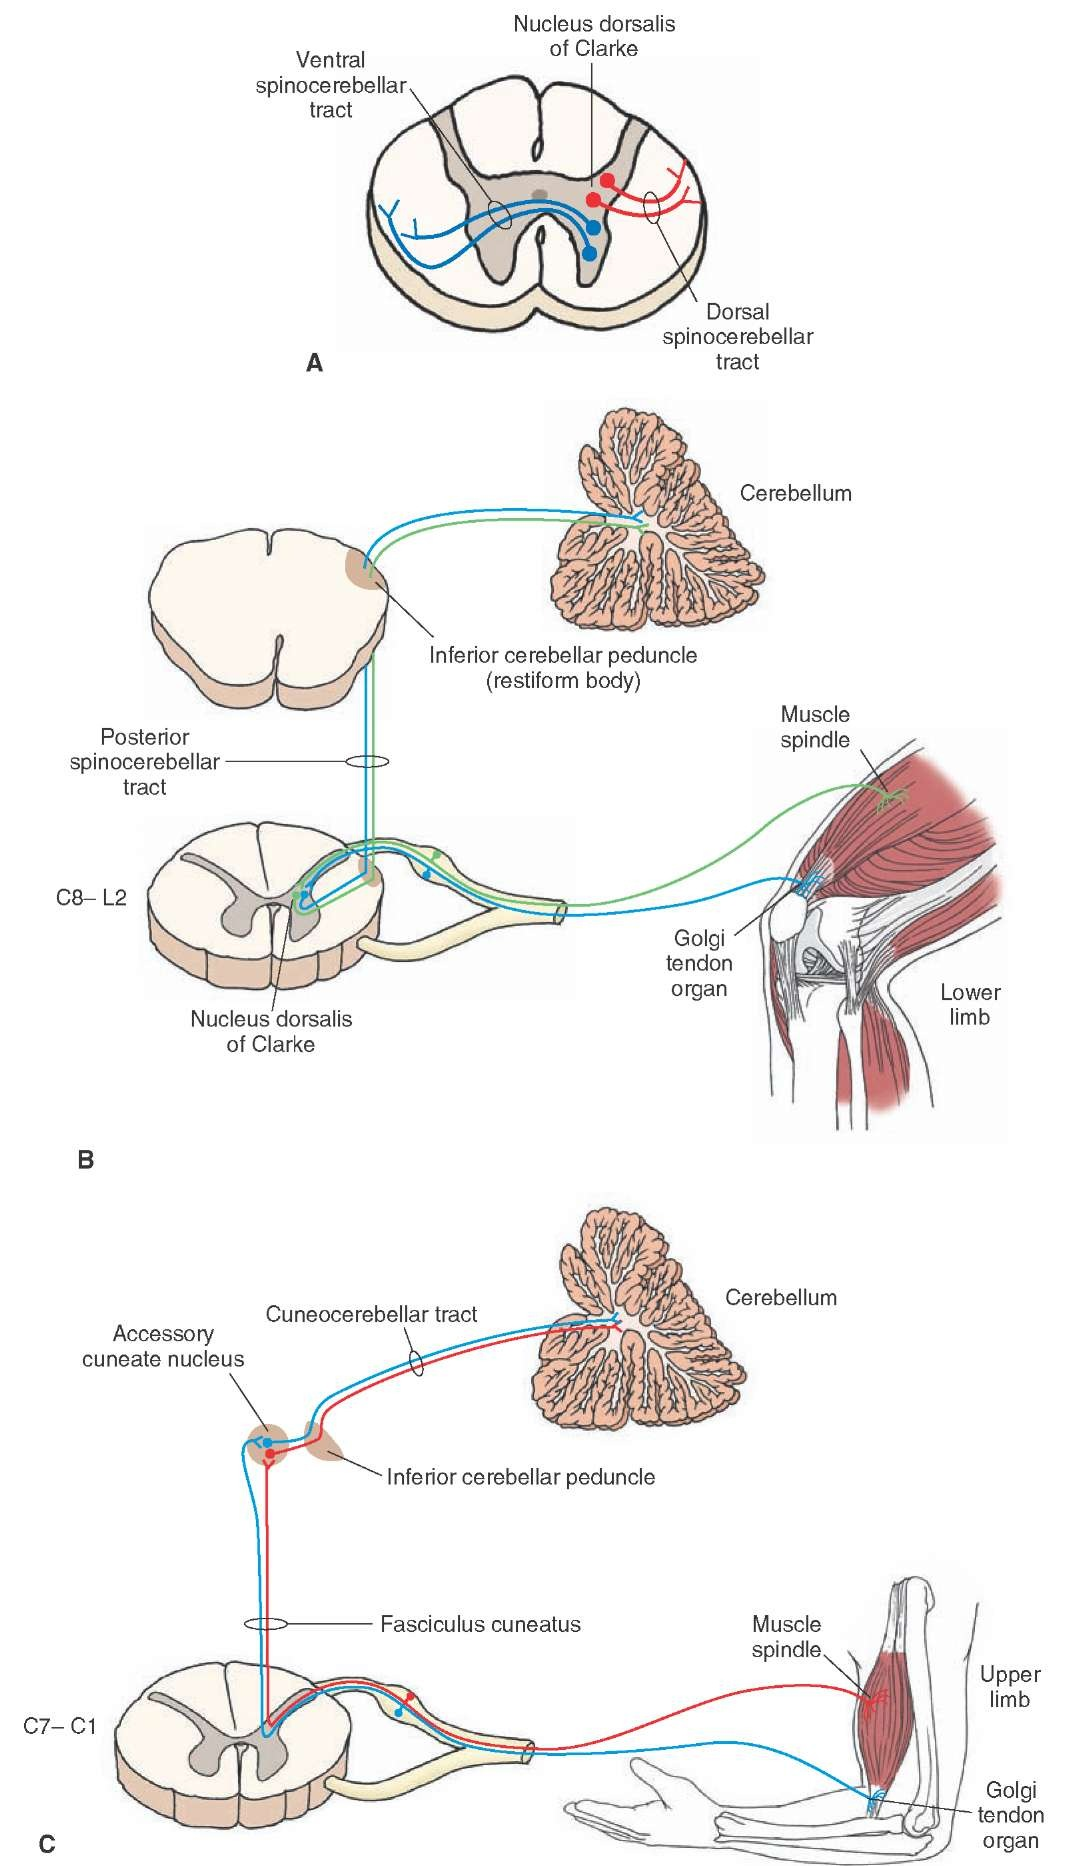 Origin and distribution of spinocerebellar and cuneocerebellar tracts. (A) The origins of the dorsal and ventral spinocerebellar tracts within the spinal cord. (B) Origin, course, and distribution of the posterior spinocerebellar tract and (C) cuneocerebellar tract. C = cervical.